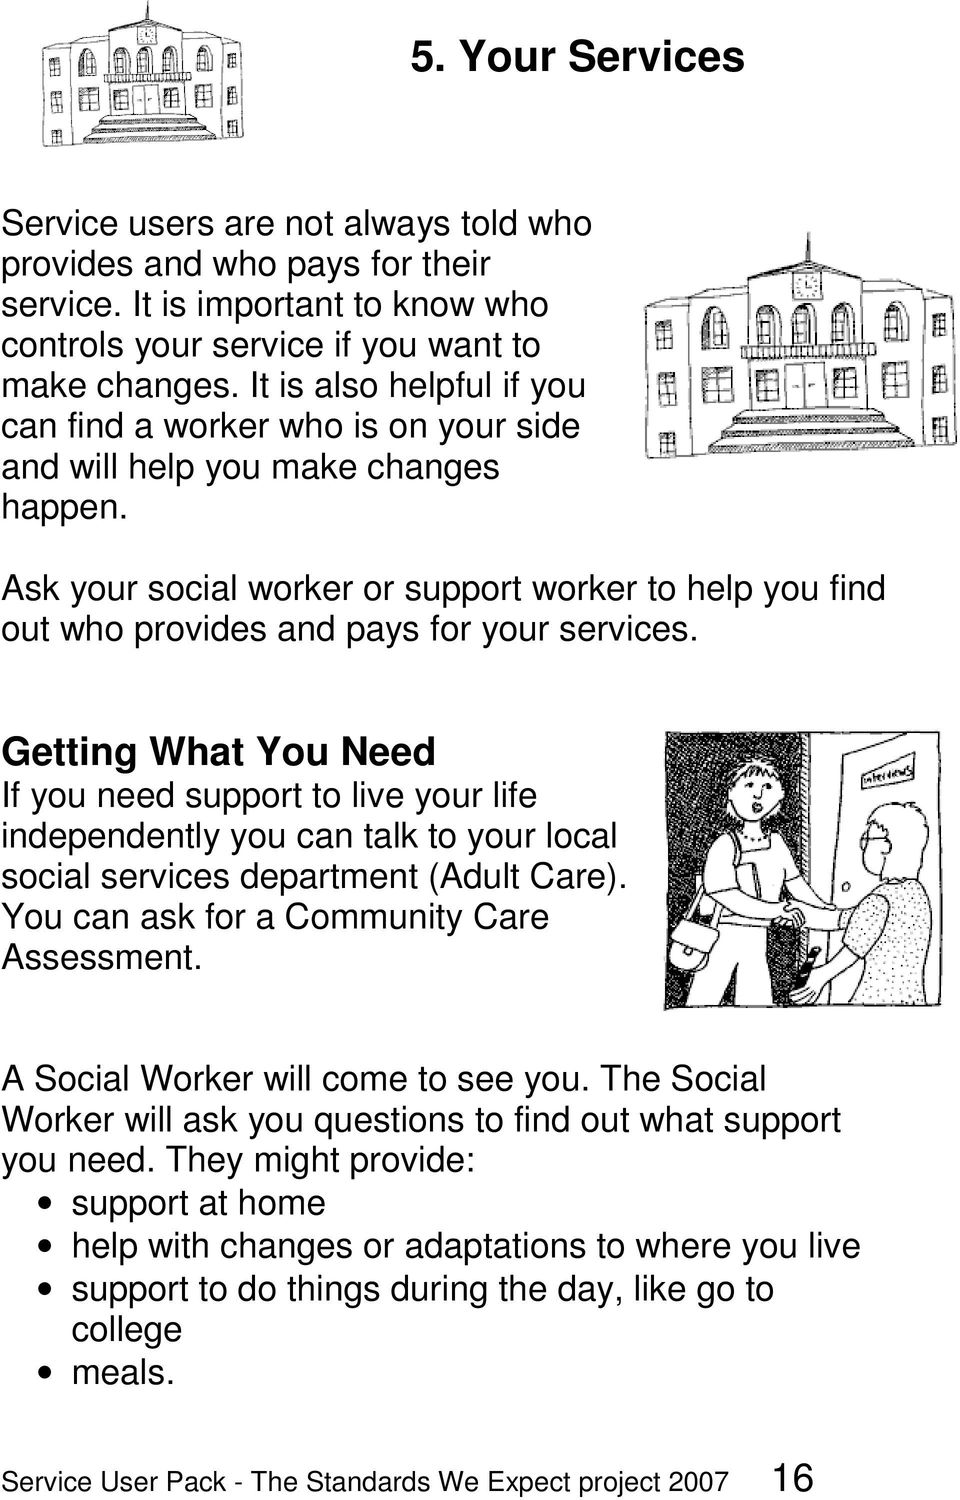 Ask your social worker or support worker to help you find out who provides and pays for your services.